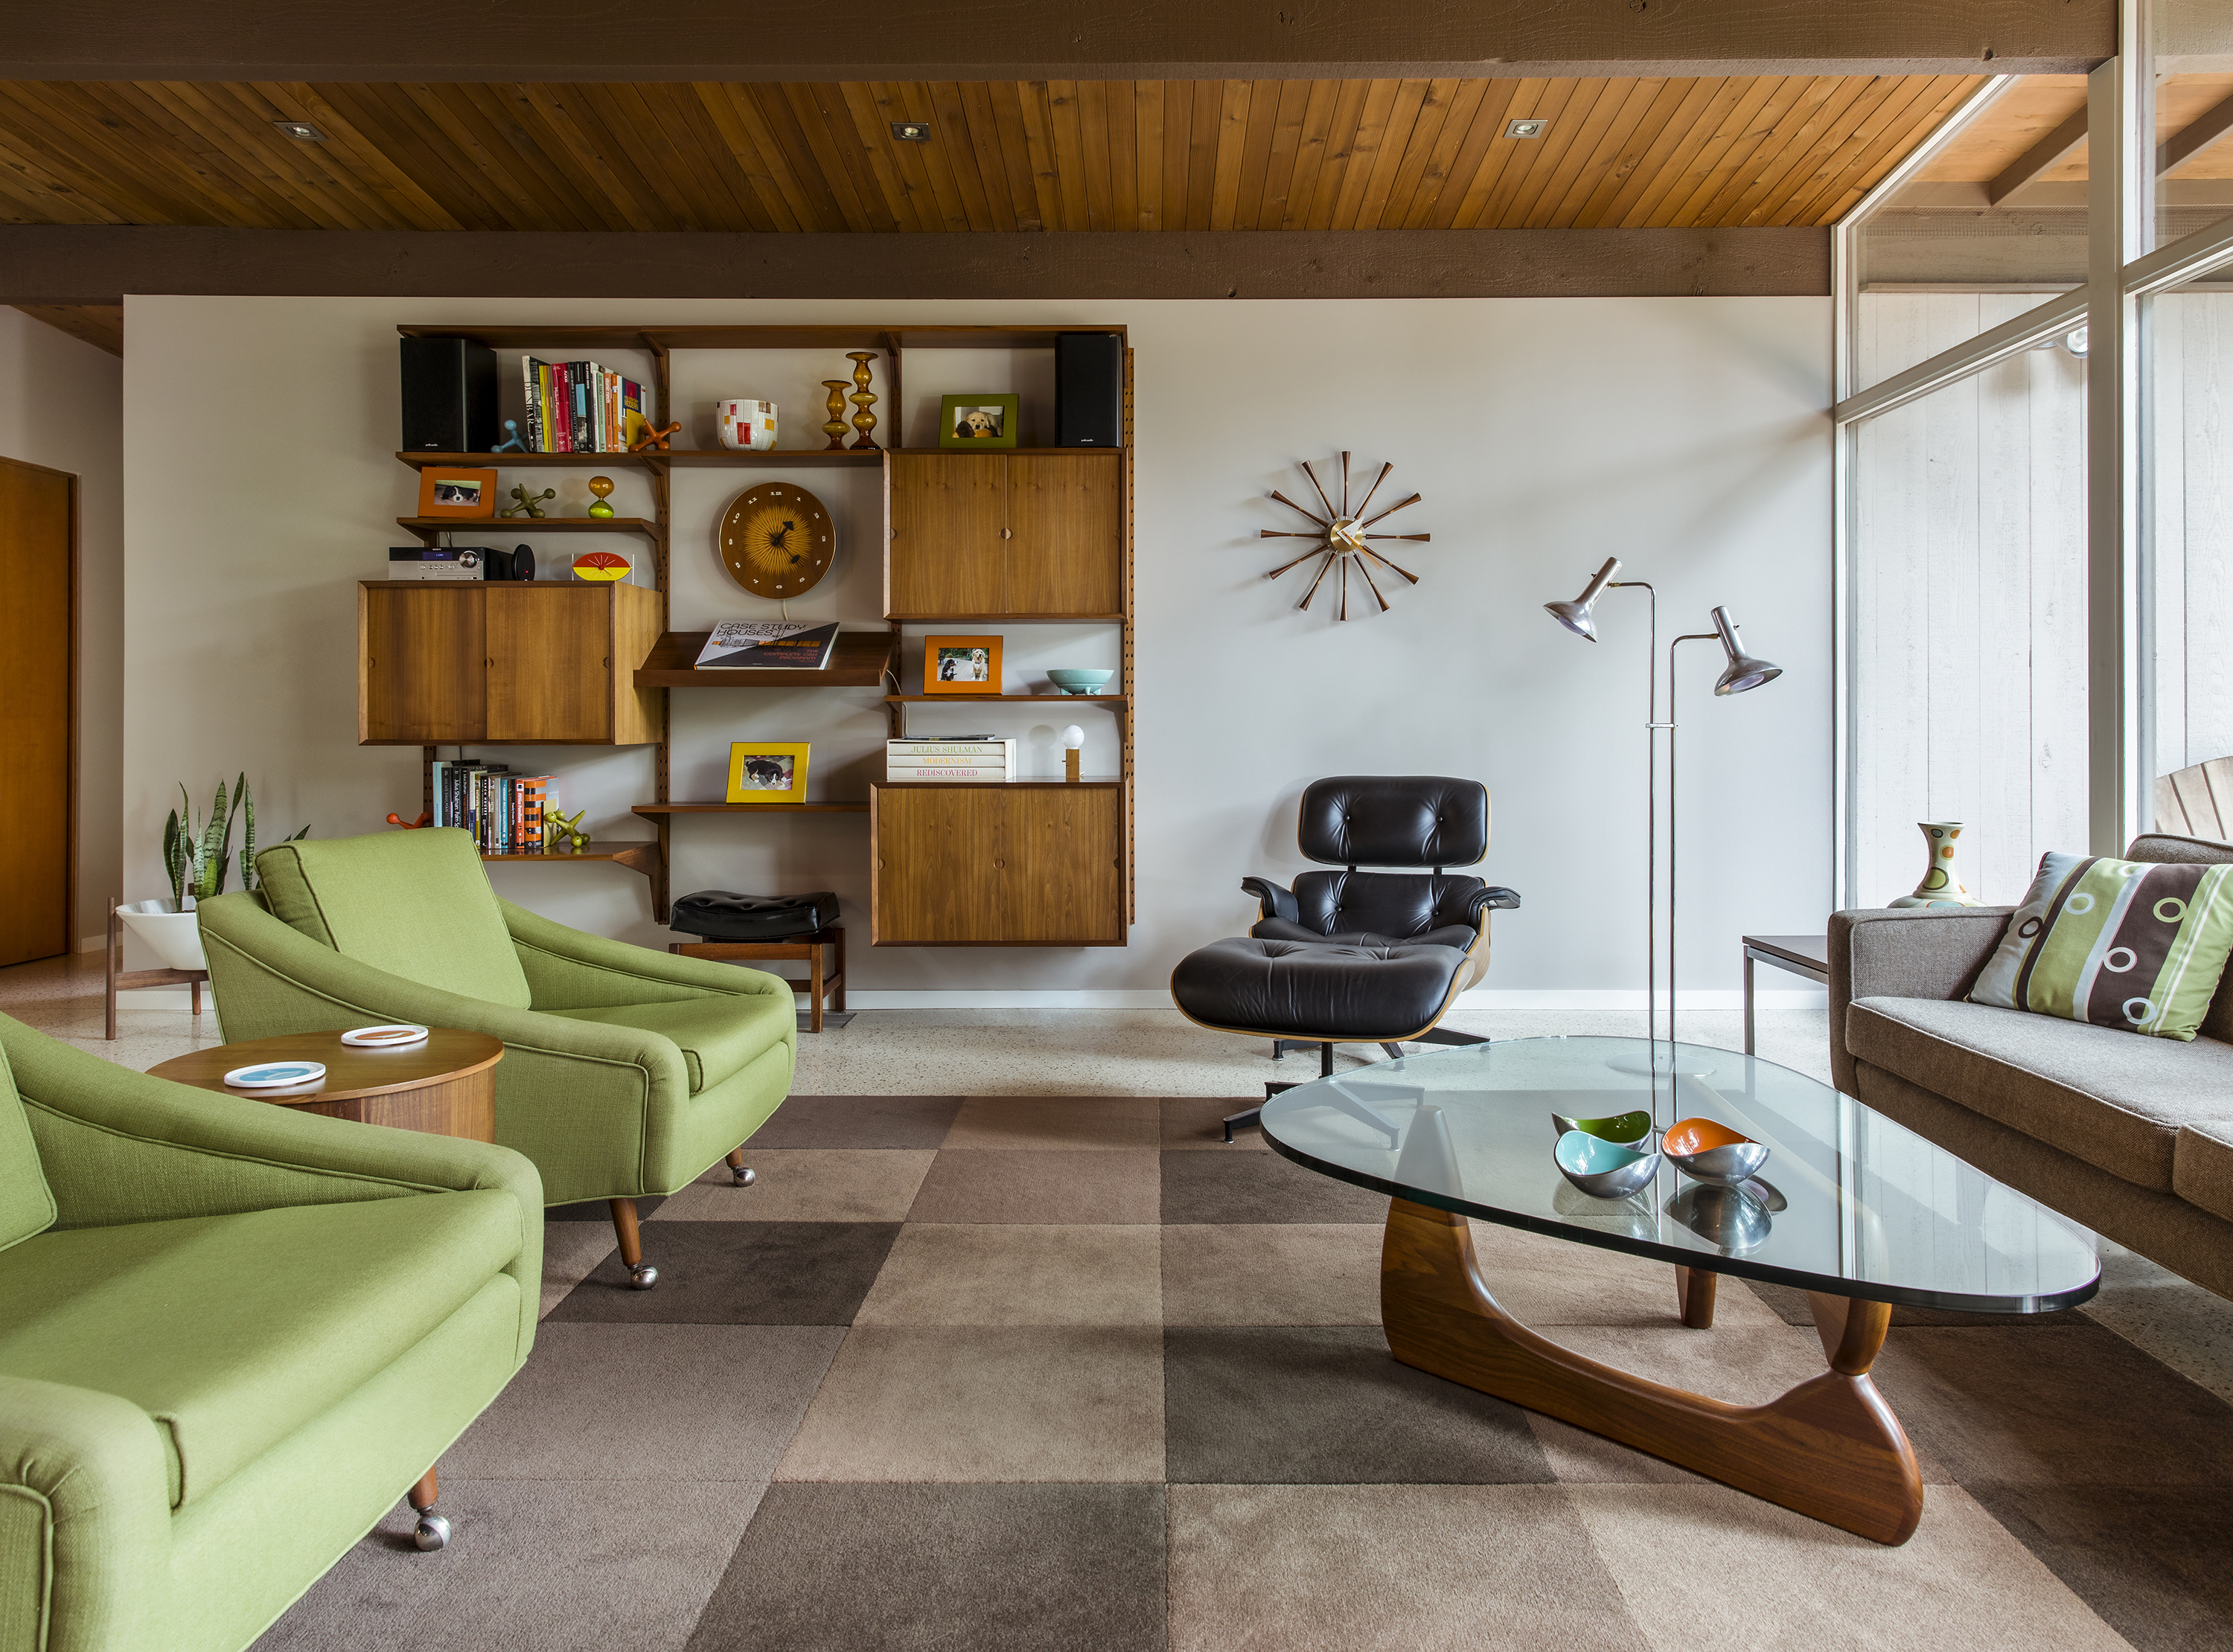 Where To Midcentury Furniture According Curbed Readers